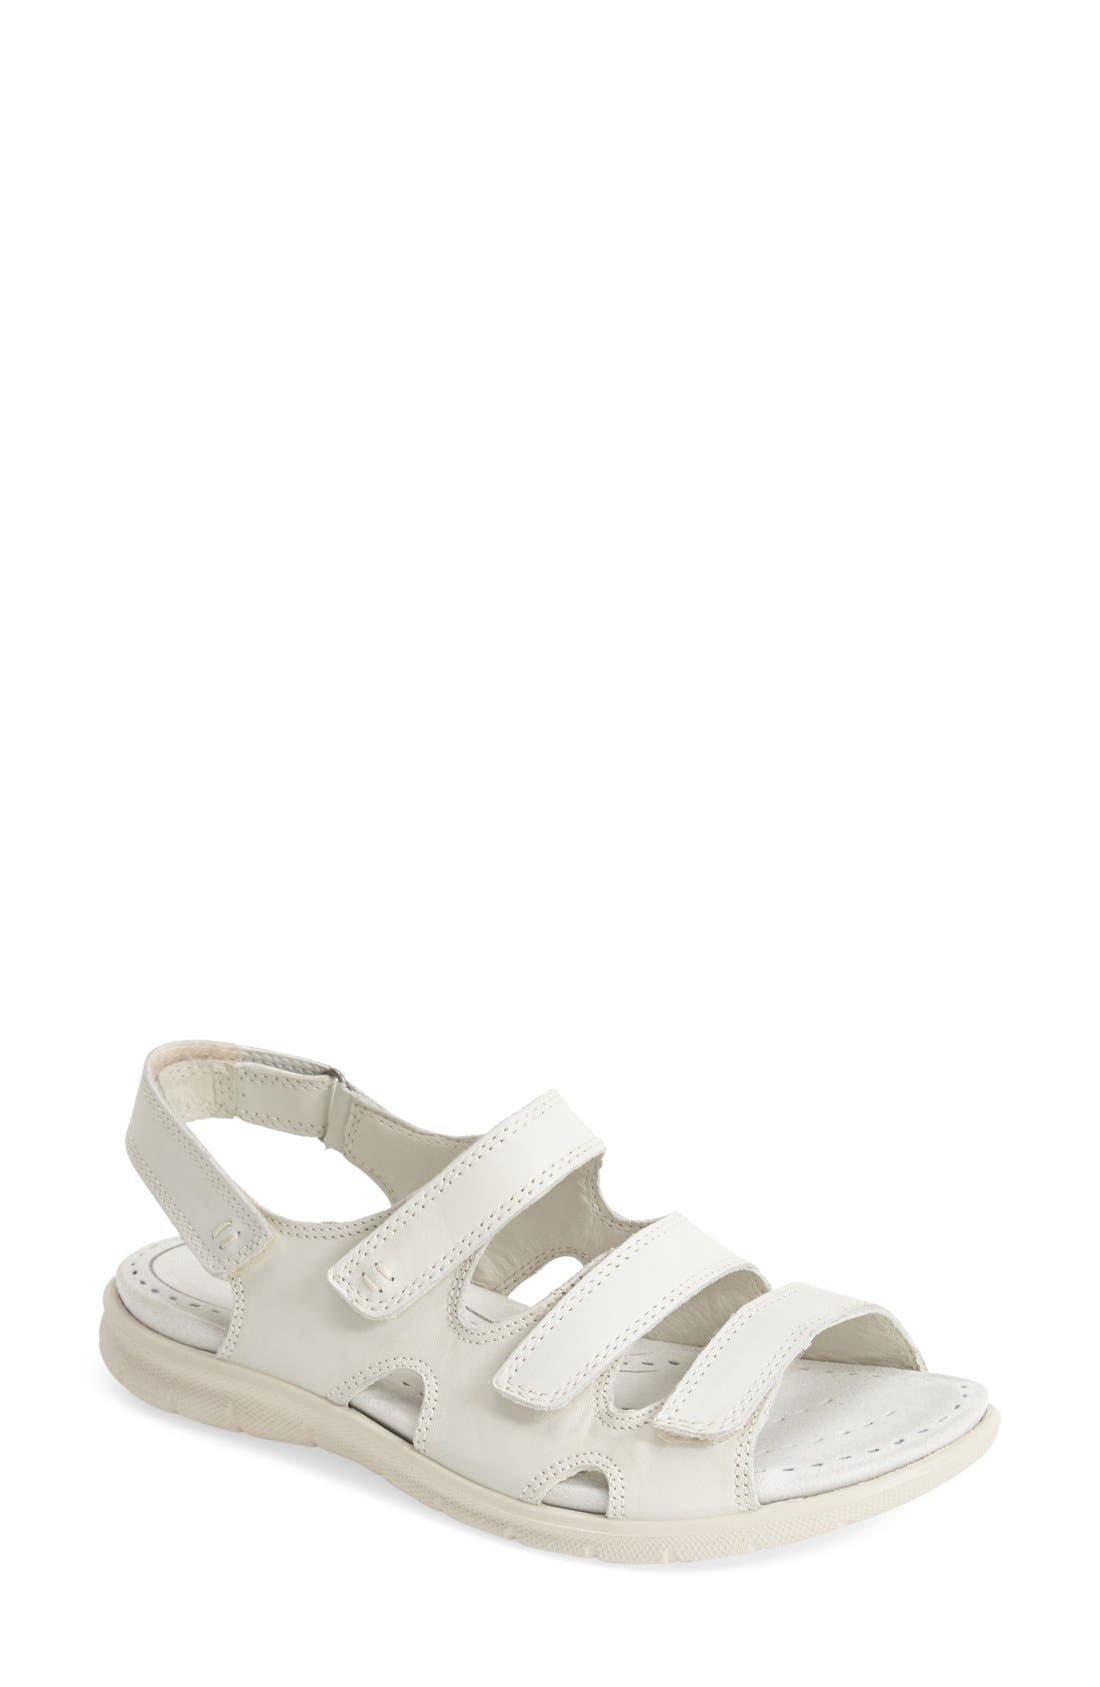 ECCO 'Babette' Leather Sandal